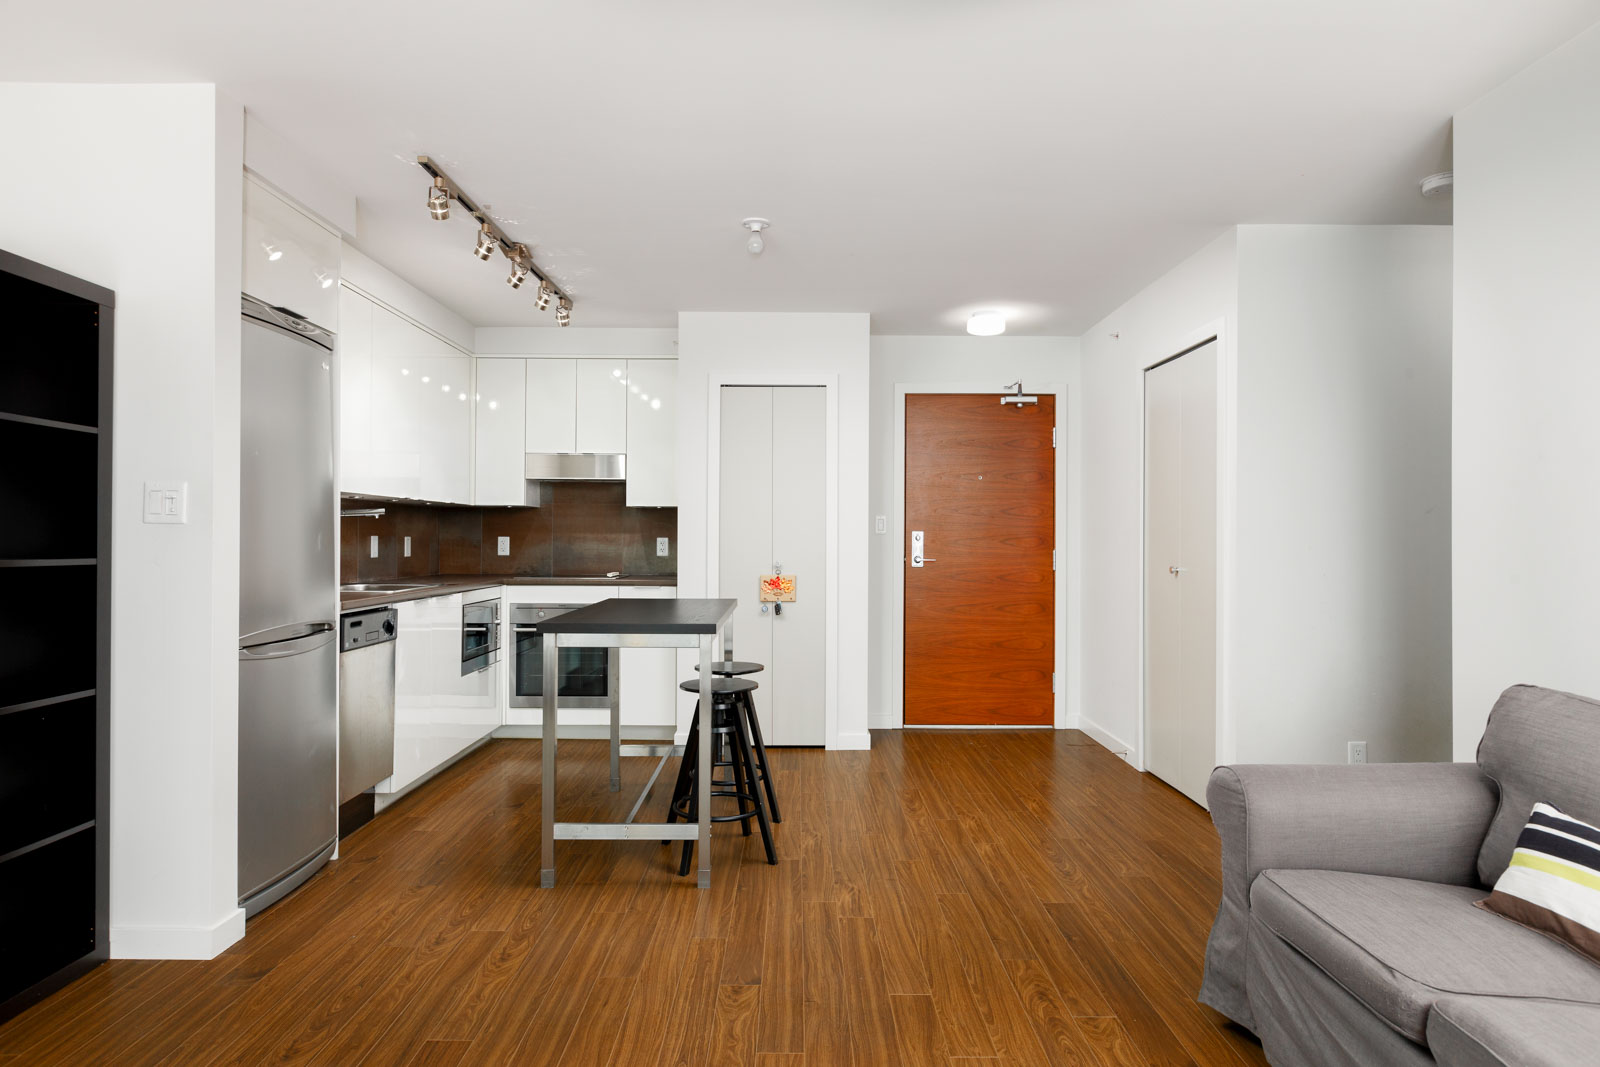 Furnished kitchen at Downtown Vancouver condo rental managed by Birds Nest Properties.